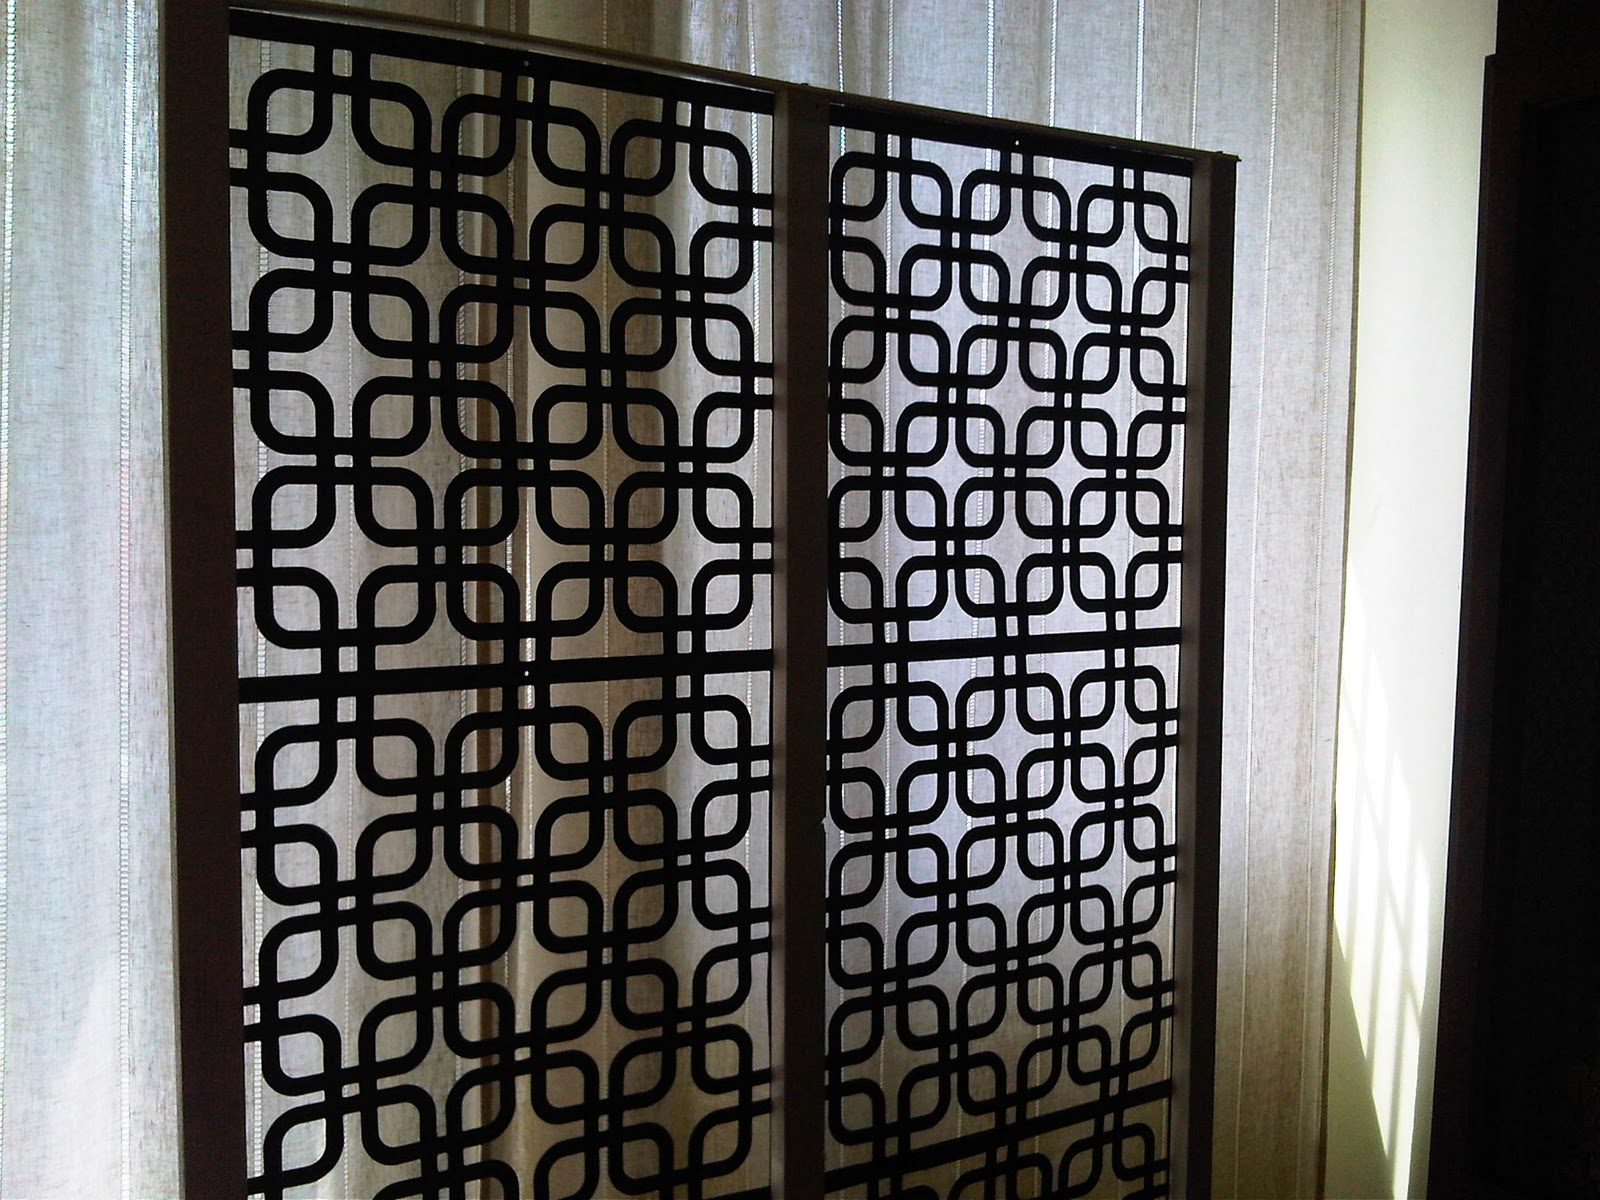 Exciting Room Dividers Diy for Your Space Room Decoration: Rope Room Divider | Room Dividers Diy | Fabric Room Divider